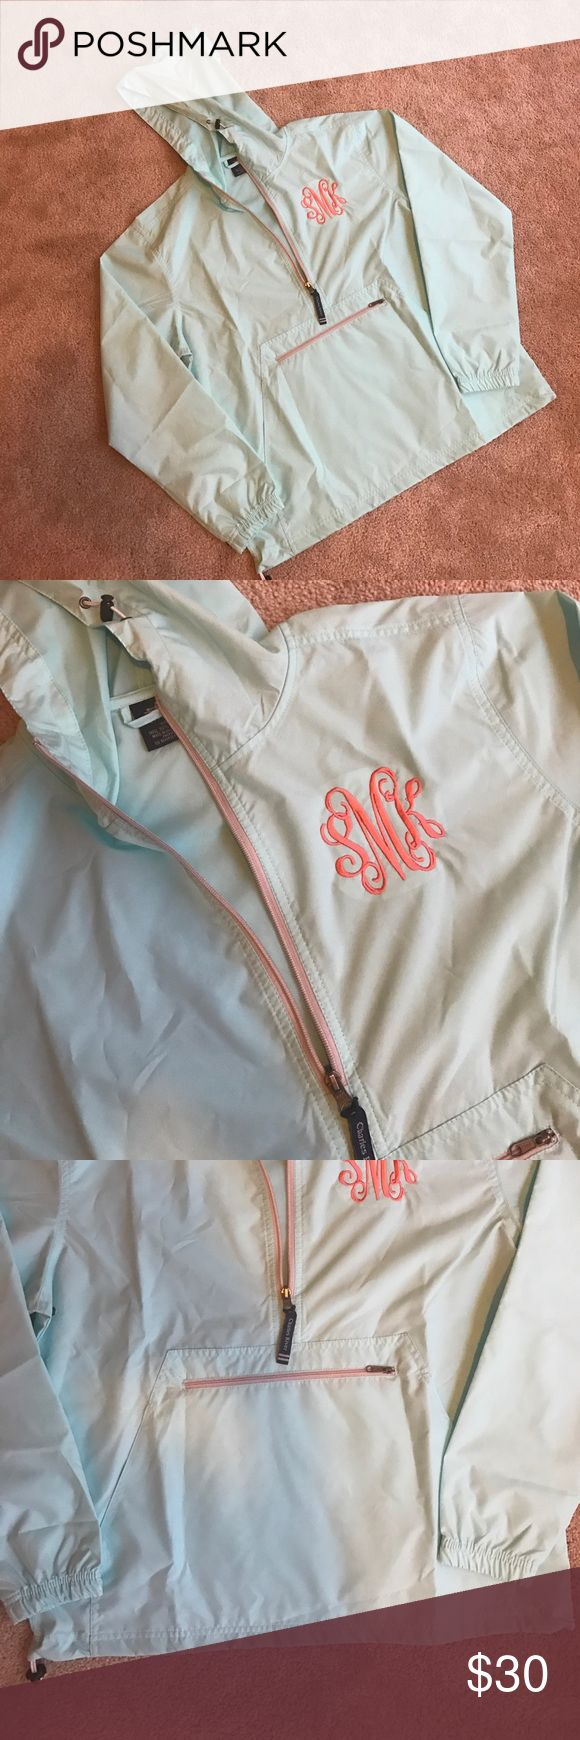 "Brand New Monogramed ""SMK"" Rain Jacket Brand new blue lightweight rain jacket with monogram ""SMK"" on it. Never worn. Monogram is a coral color. Charles River Jackets & Coats"